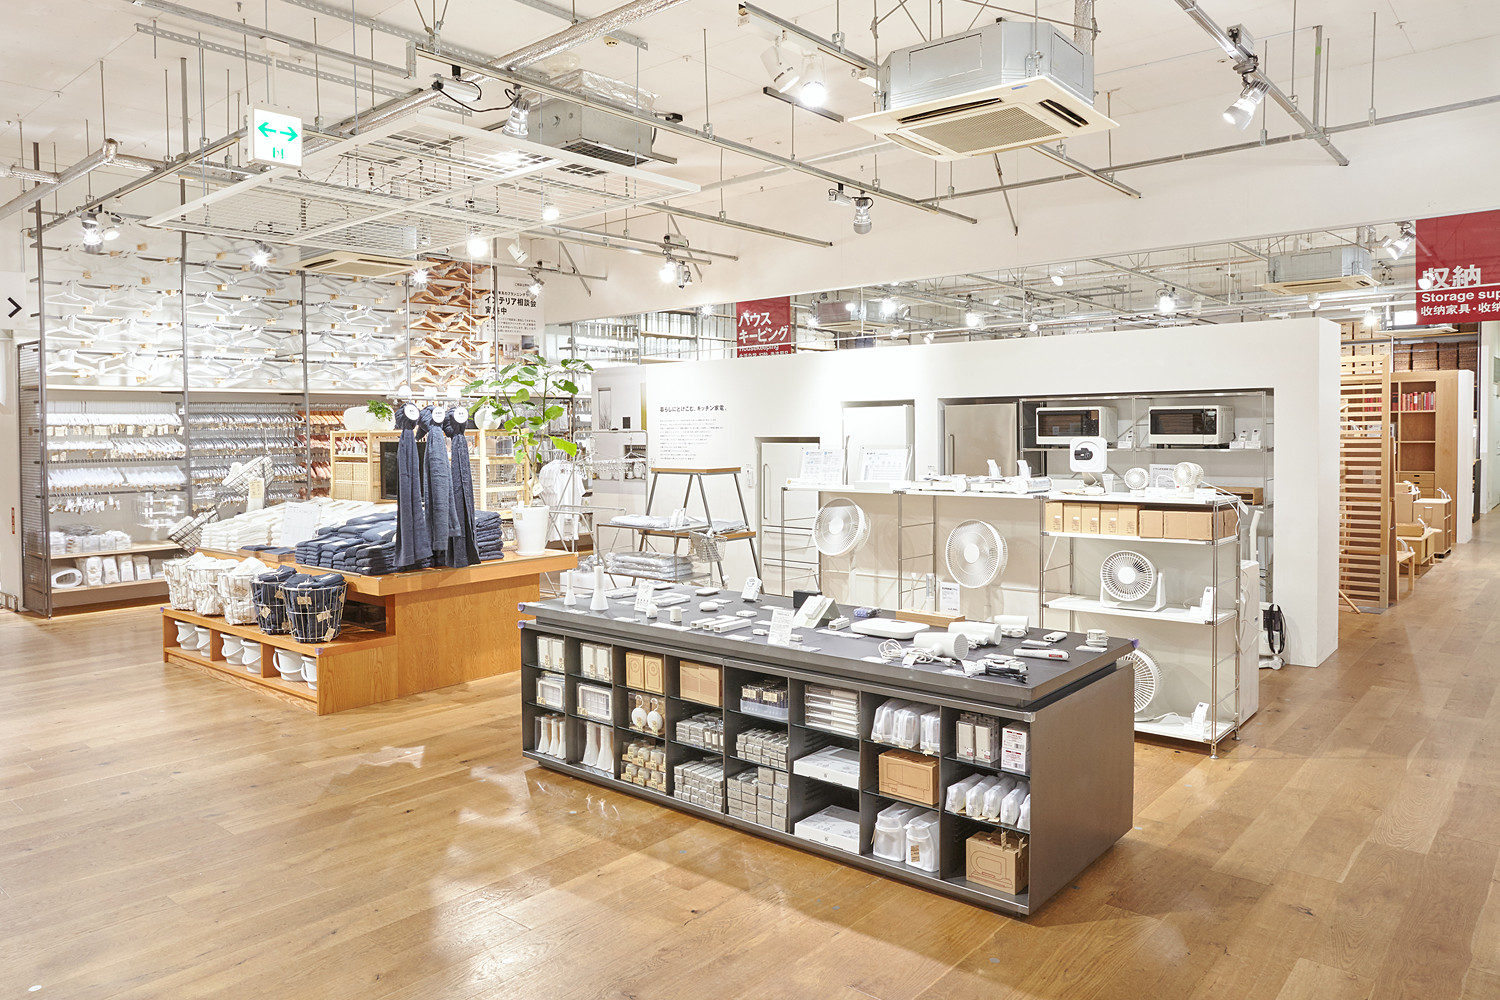 muji yurkucho renovation open muji. Black Bedroom Furniture Sets. Home Design Ideas